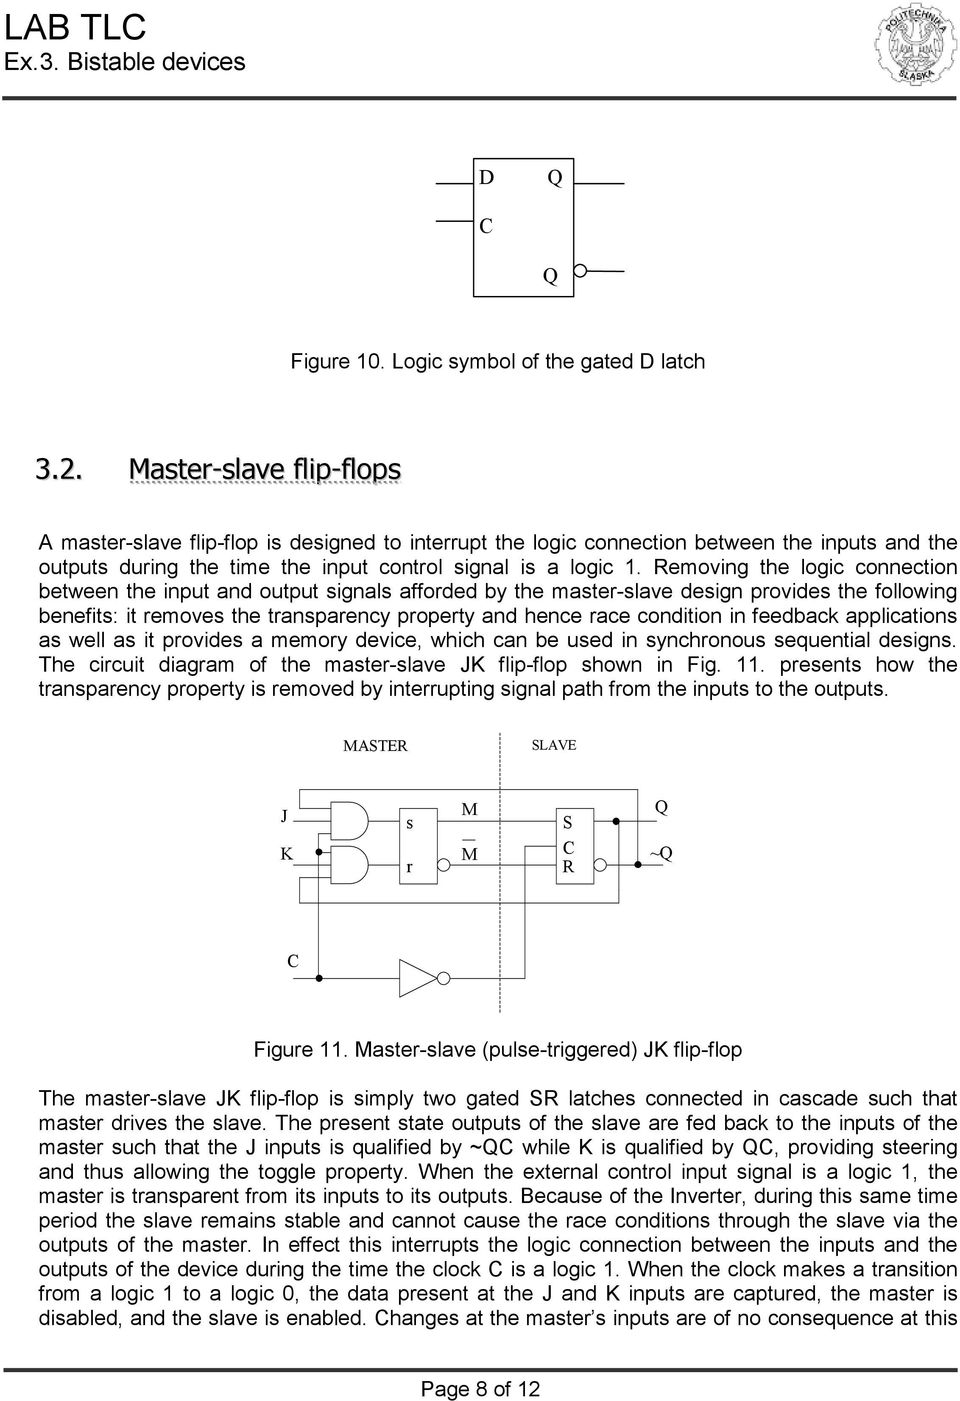 Master Logic Diagram Theory Of Circuits Laboratory Manual Exercise 3 Pdf Removing The Connection Between Input And Output Signals Afforded By Slave